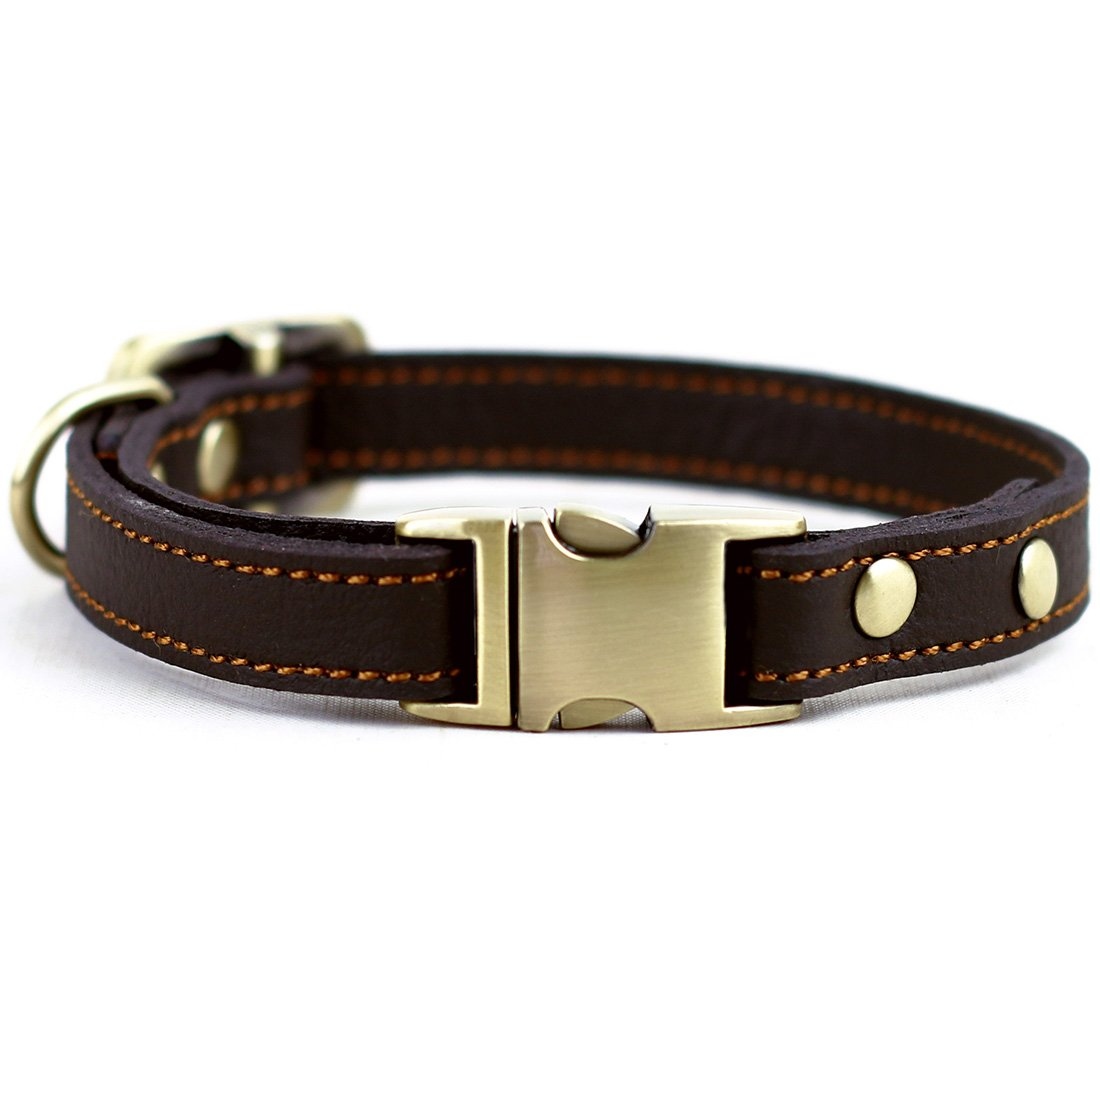 CHEDE Luxury Real Leather Dog Collar- Handmade For Medium Dog Breeds With The Finest Genuine Leather-Best Quality Collar That Is Stylish ,Soft Strong And Comfortable-Red Dog Collar